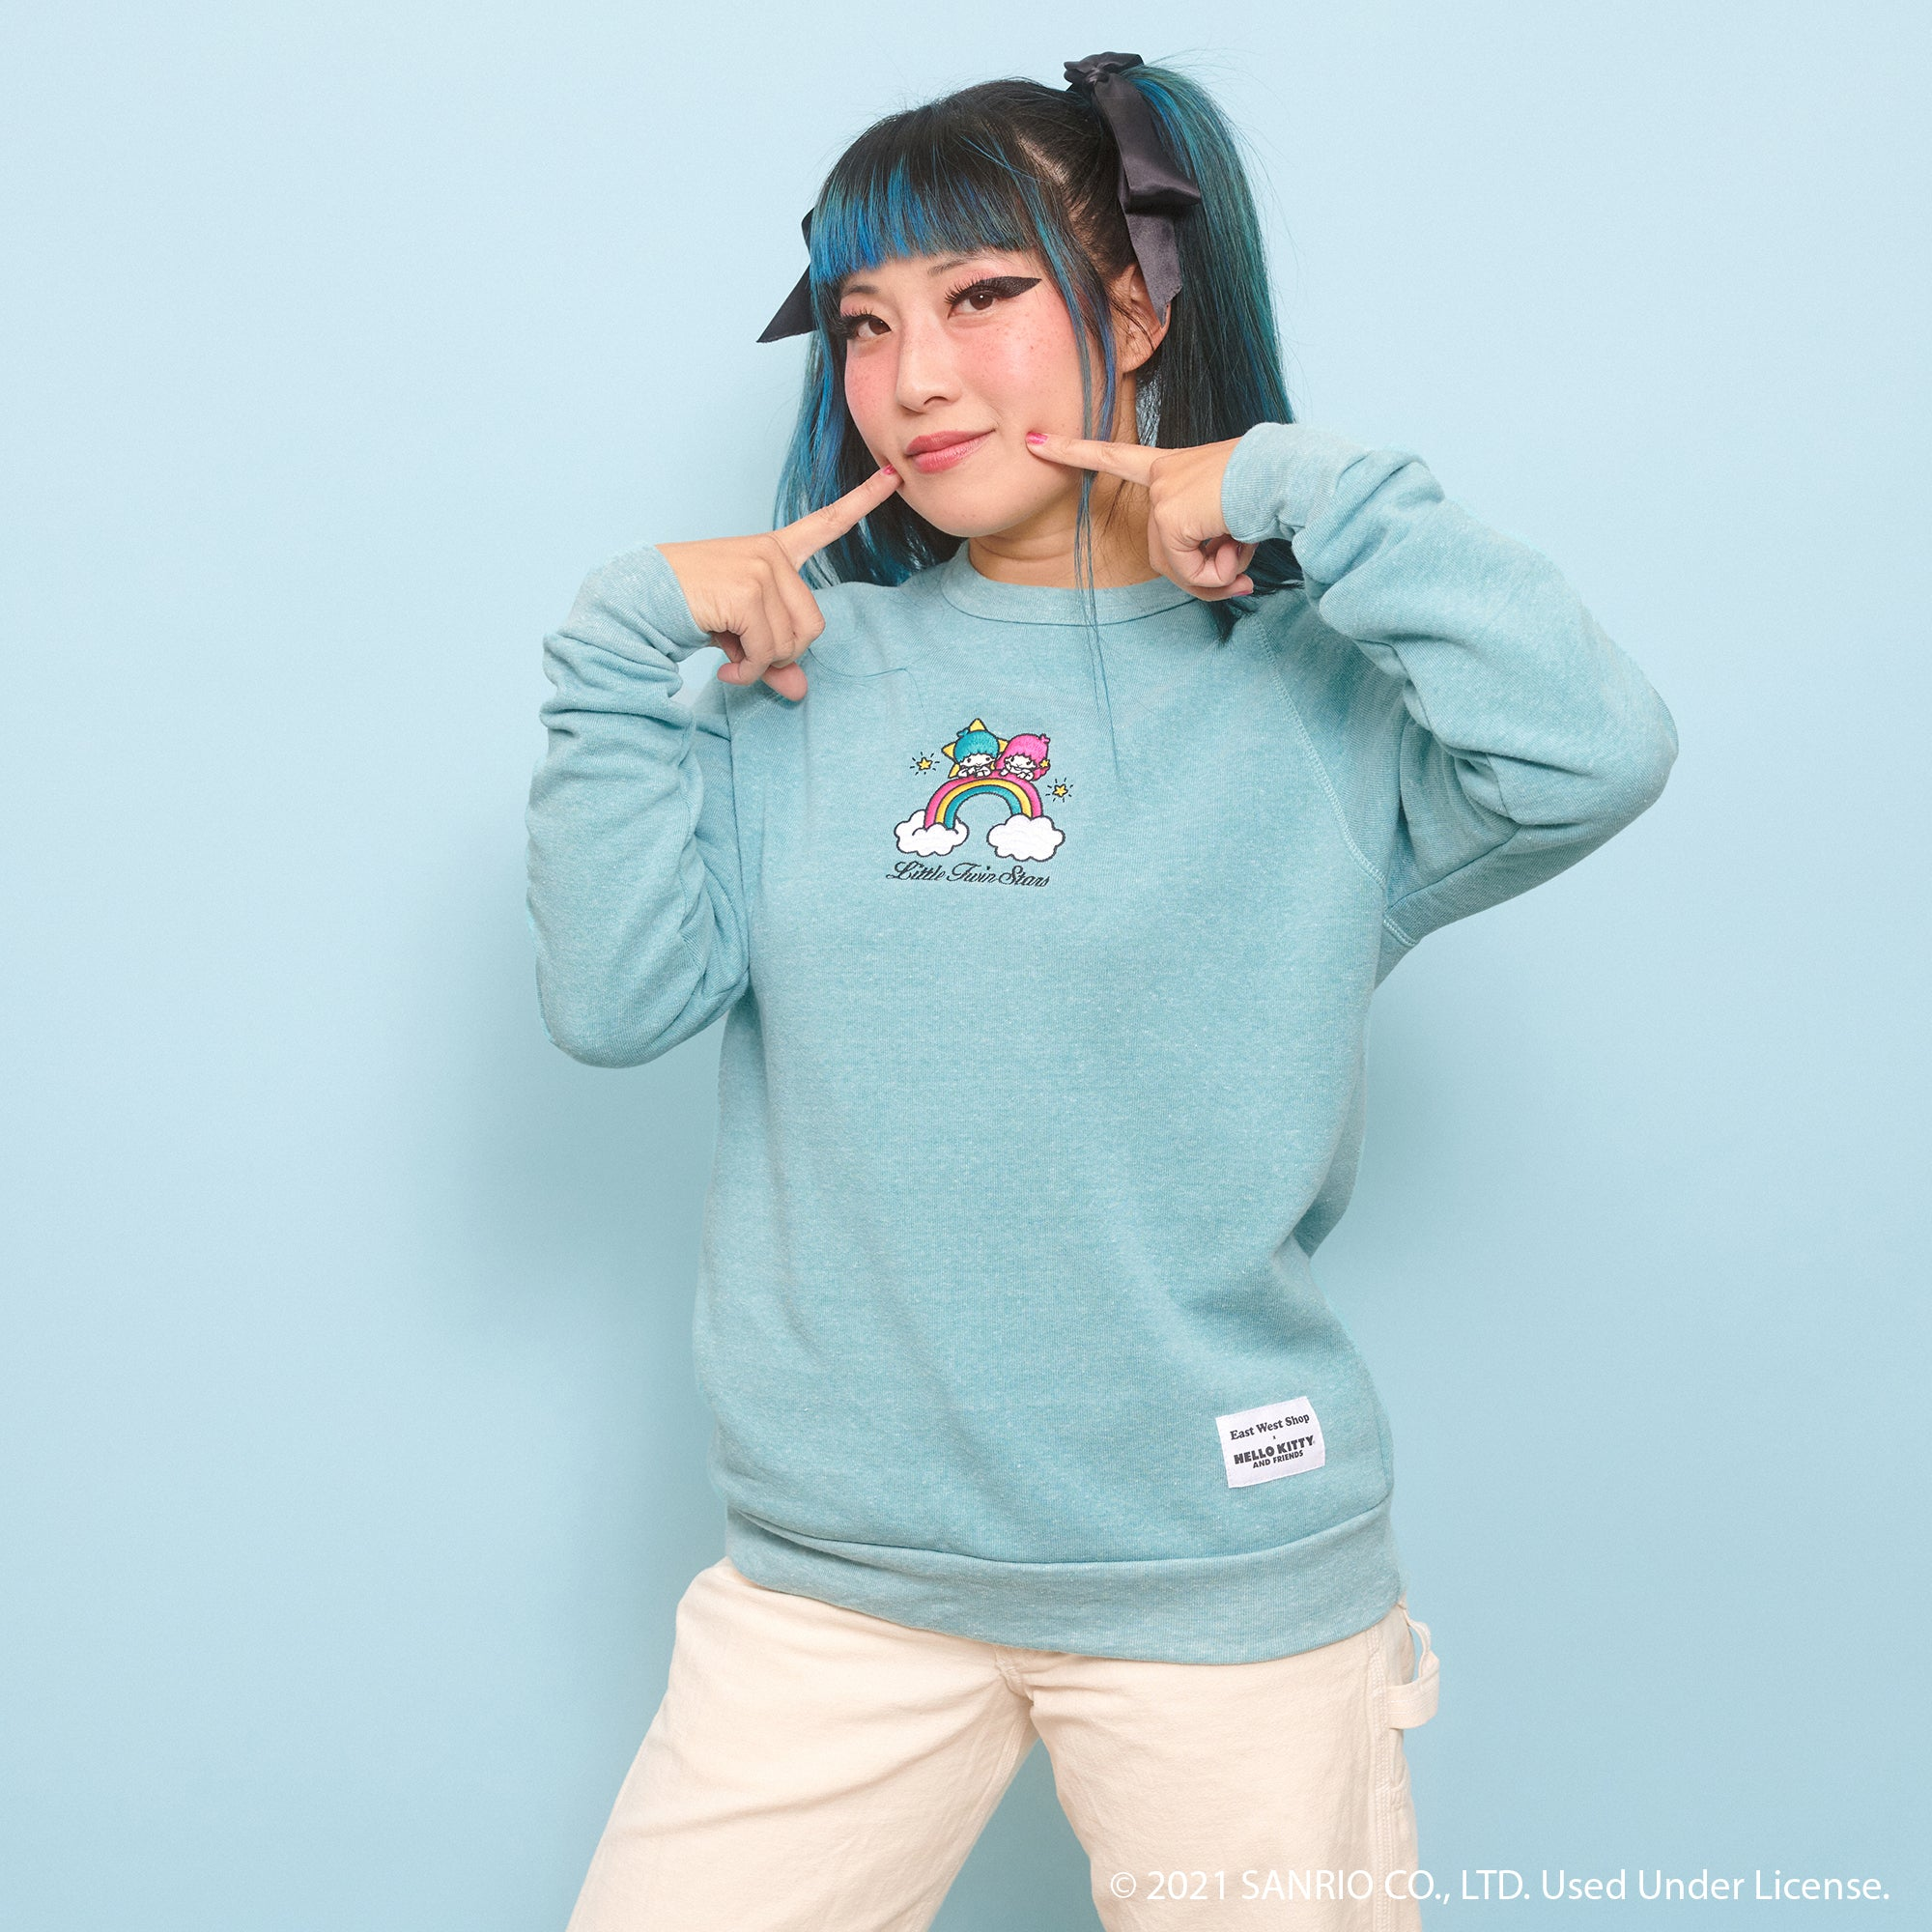 Little Twin Stars Crew Neck - Blue